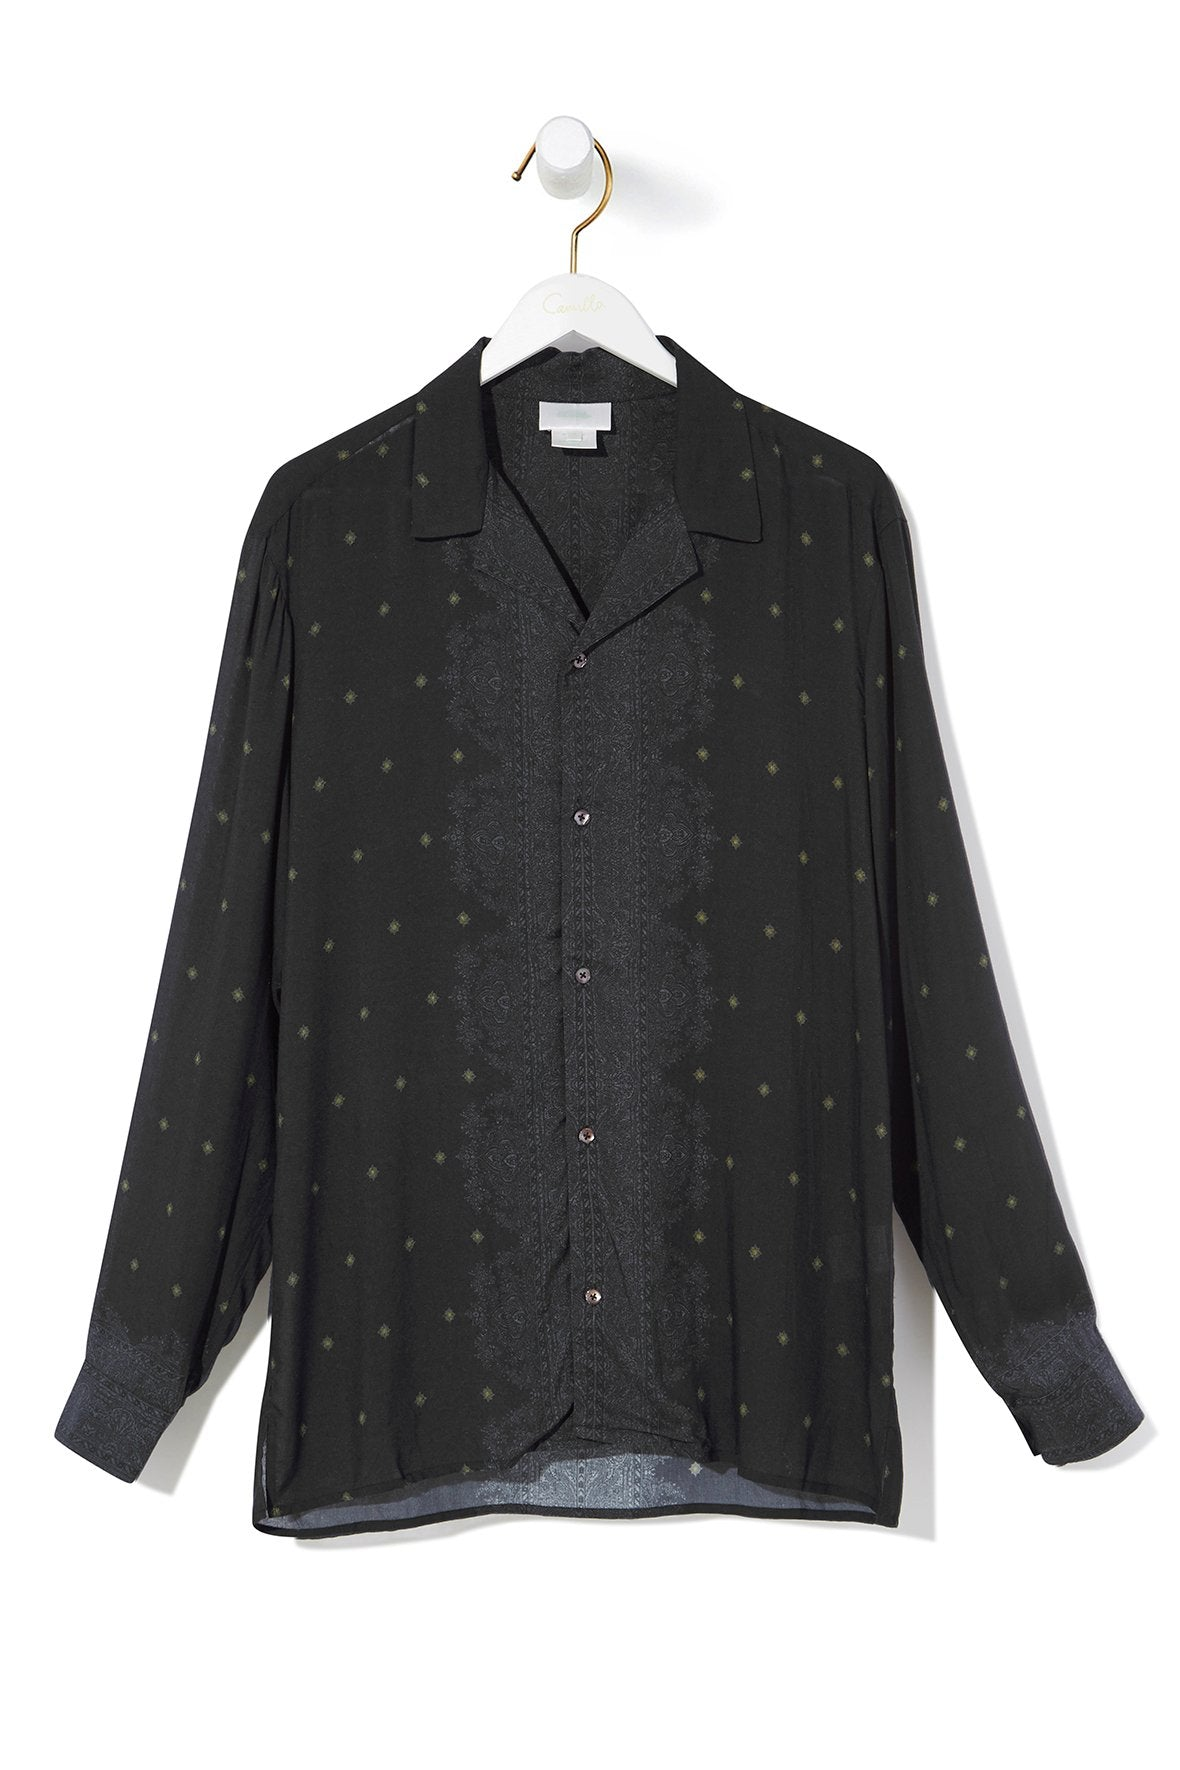 LUCKY STARS MENS LONG SLEEVE SHIRT